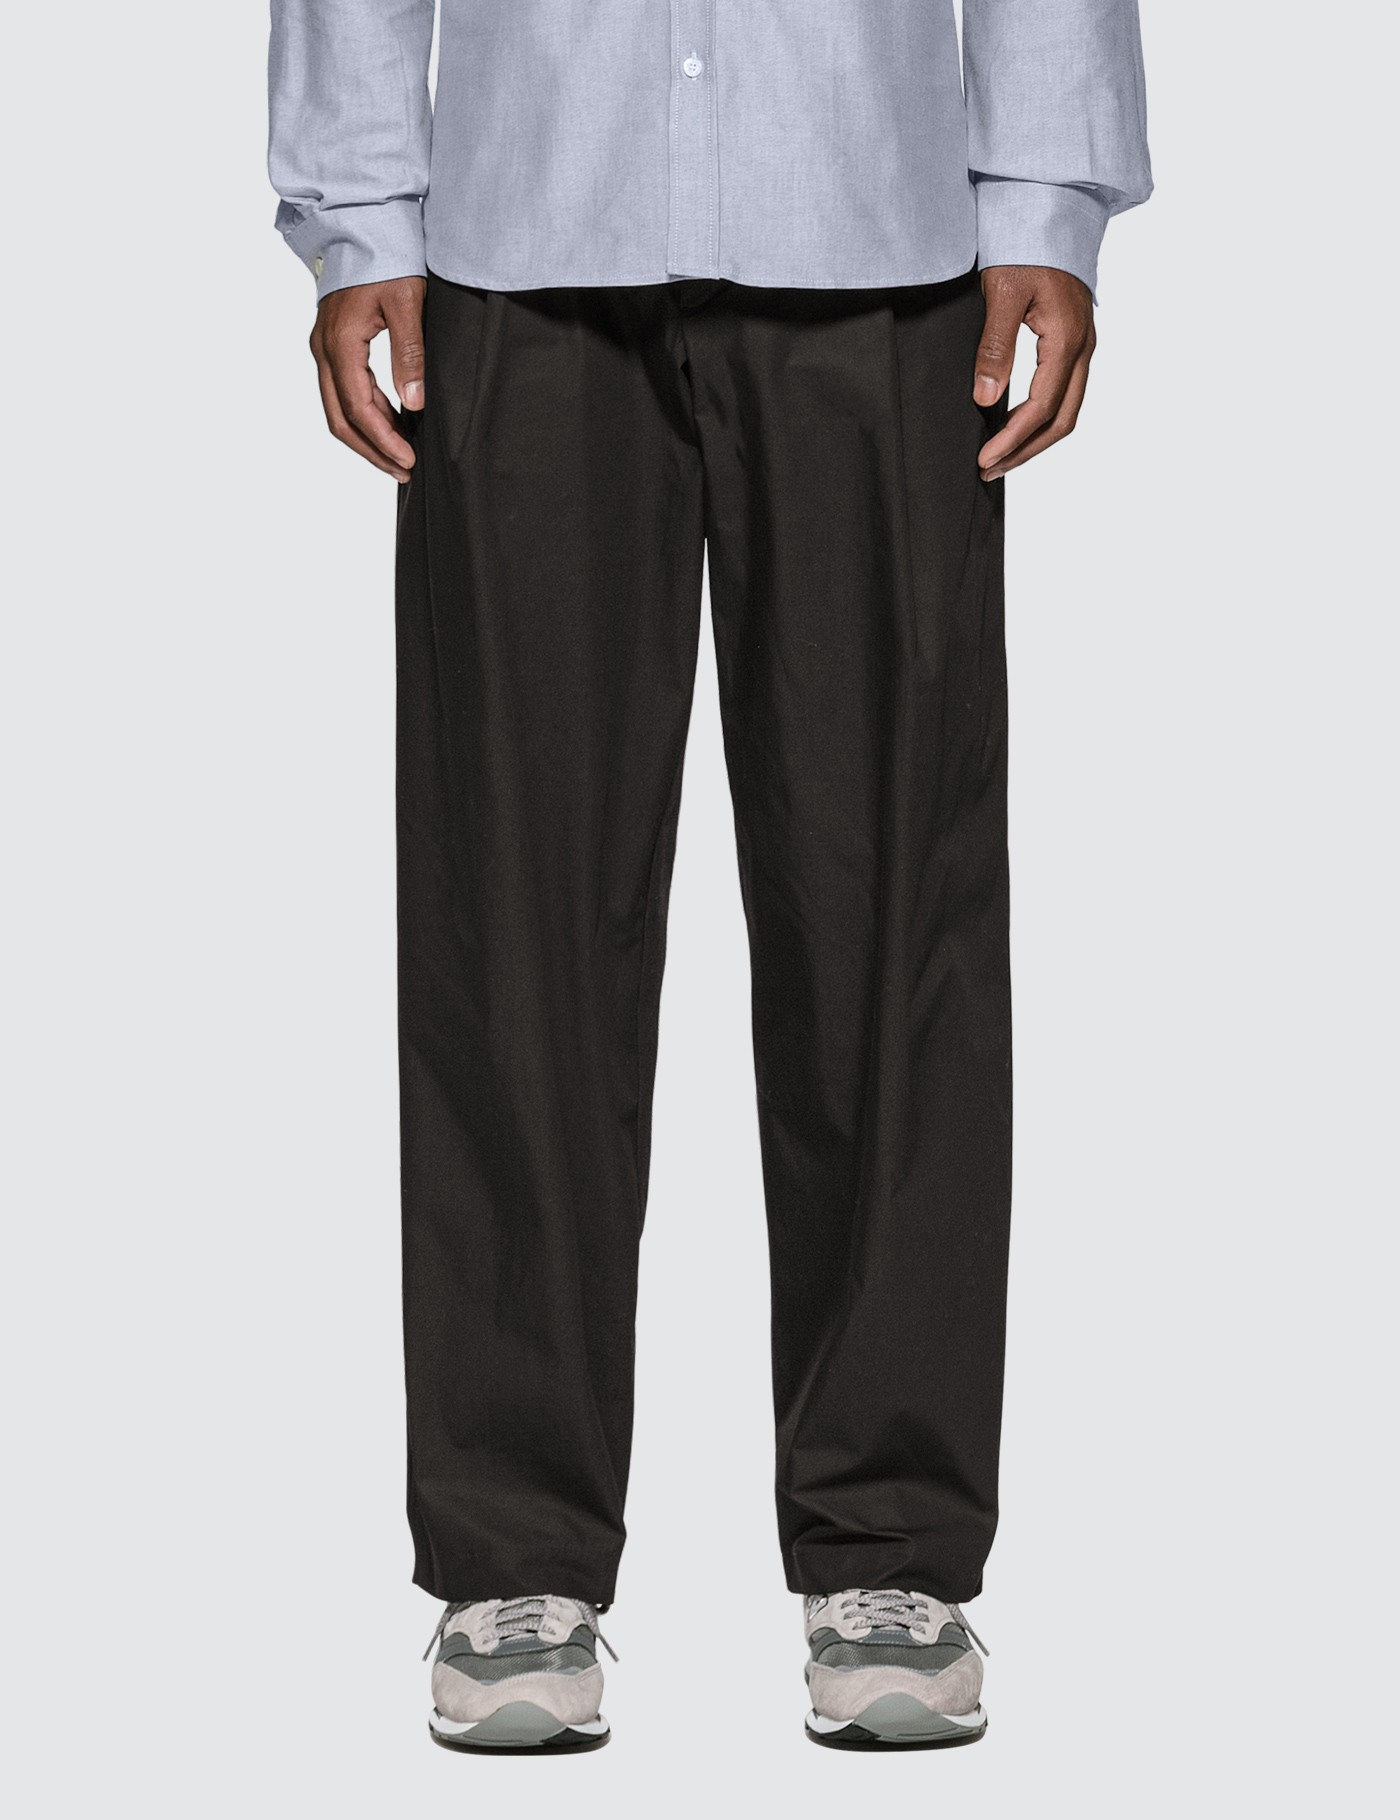 MAISON KITSUNE Single-pleated Pants